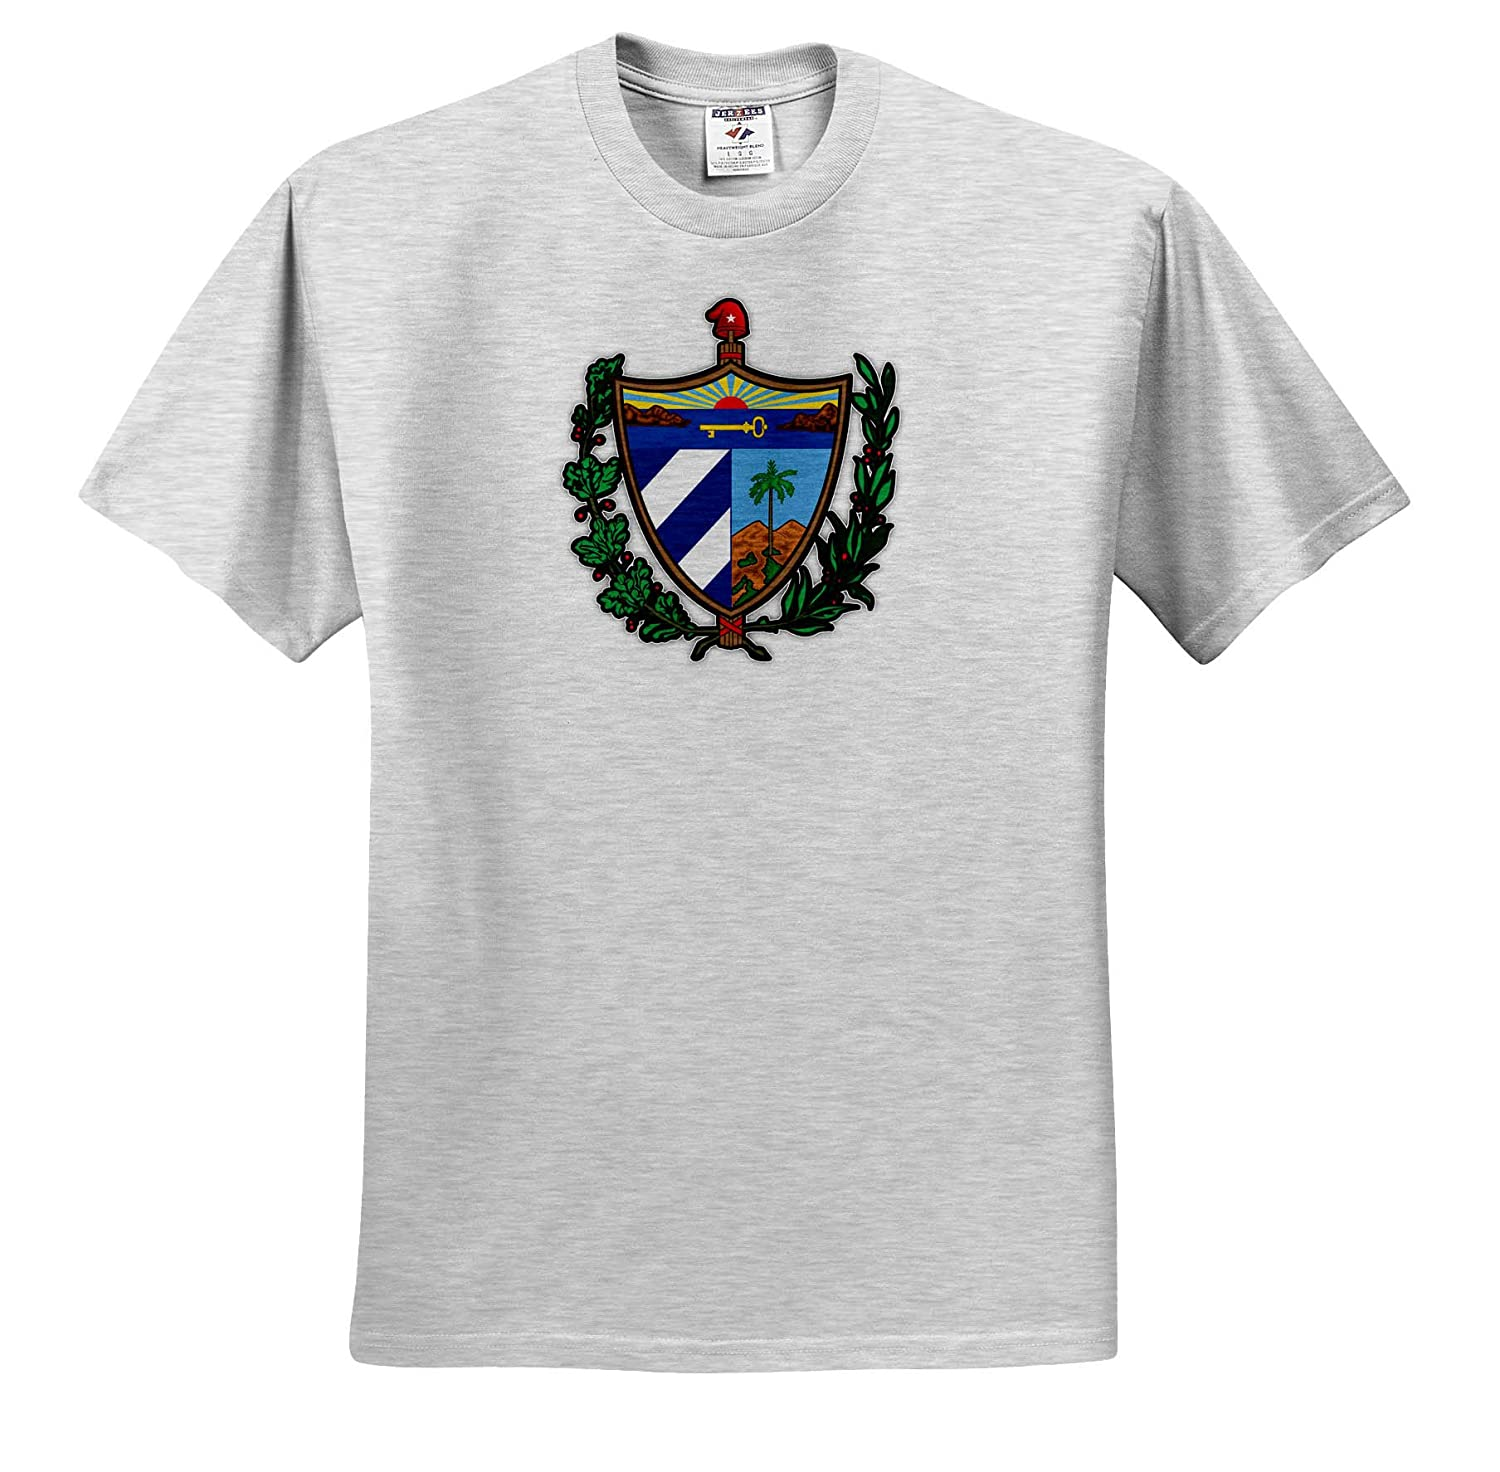 Cuba Coat of Arms National Symbol Icon Illustrations Adult T-Shirt XL 3dRose Carsten Reisinger ts/_319539